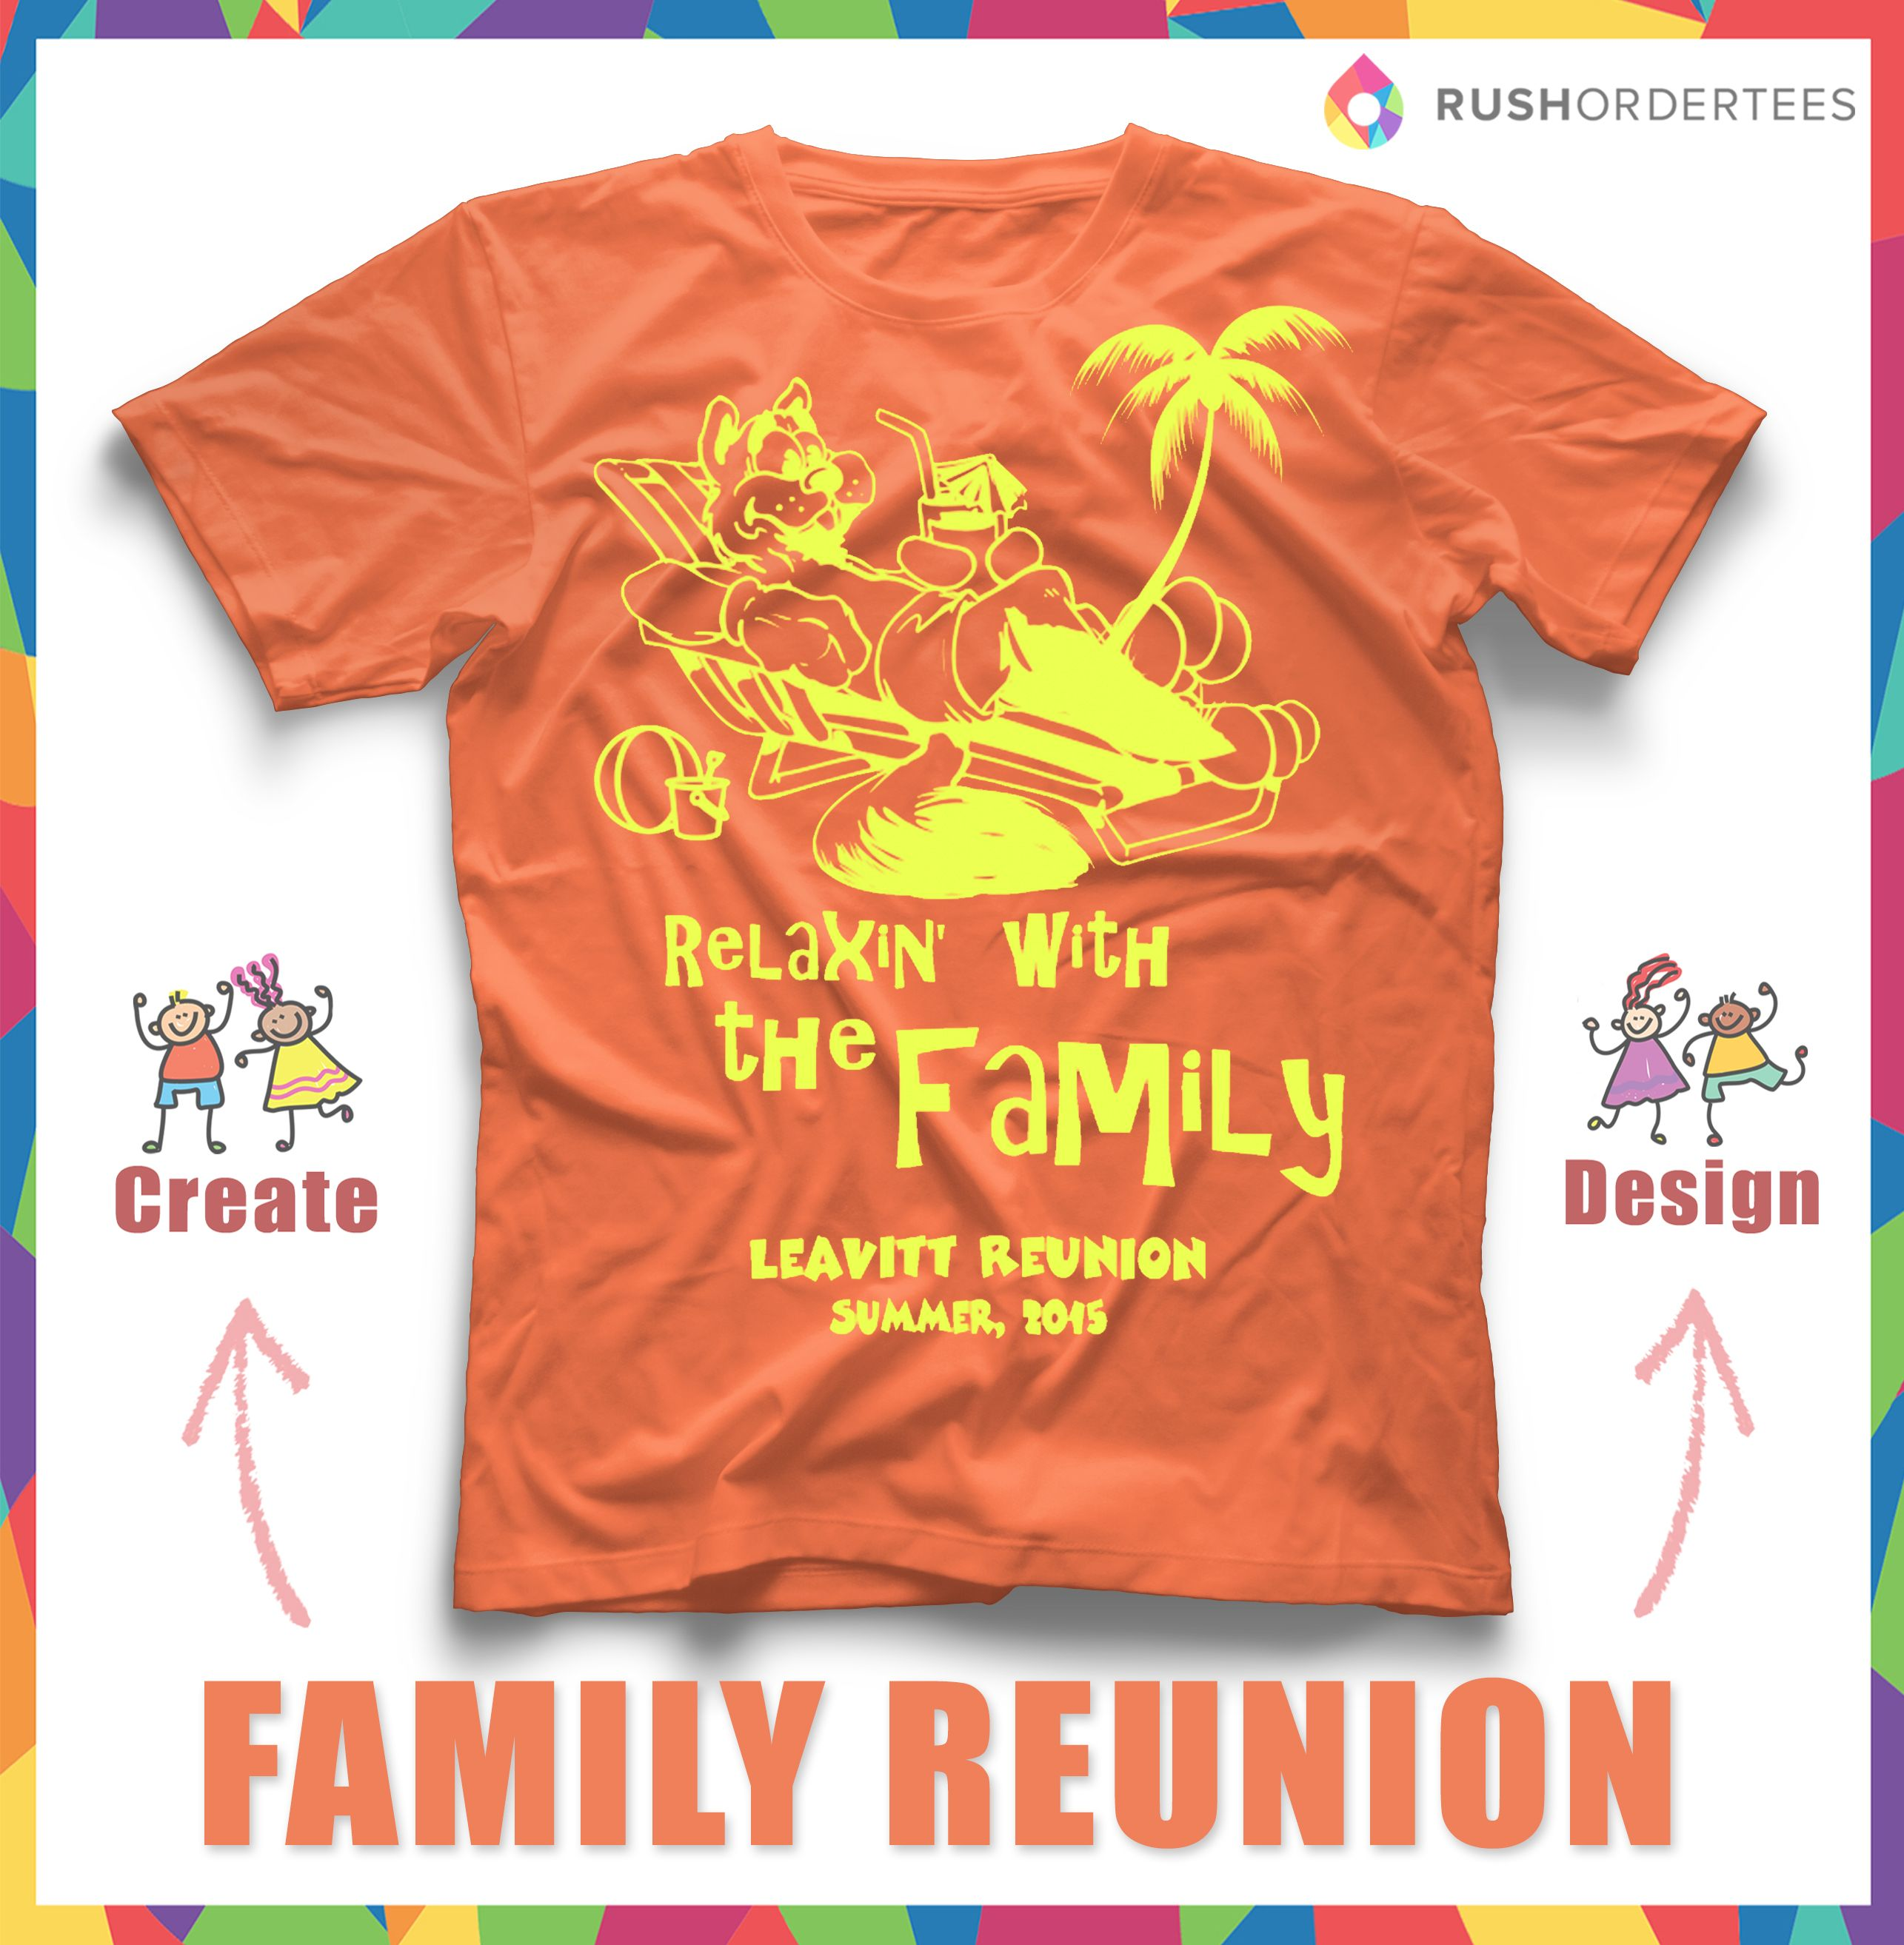 Design your own t-shirt for family reunion - Family Reunion Summer Vacation Custom T Shirt Design Customize Yourself Rushordertees Com